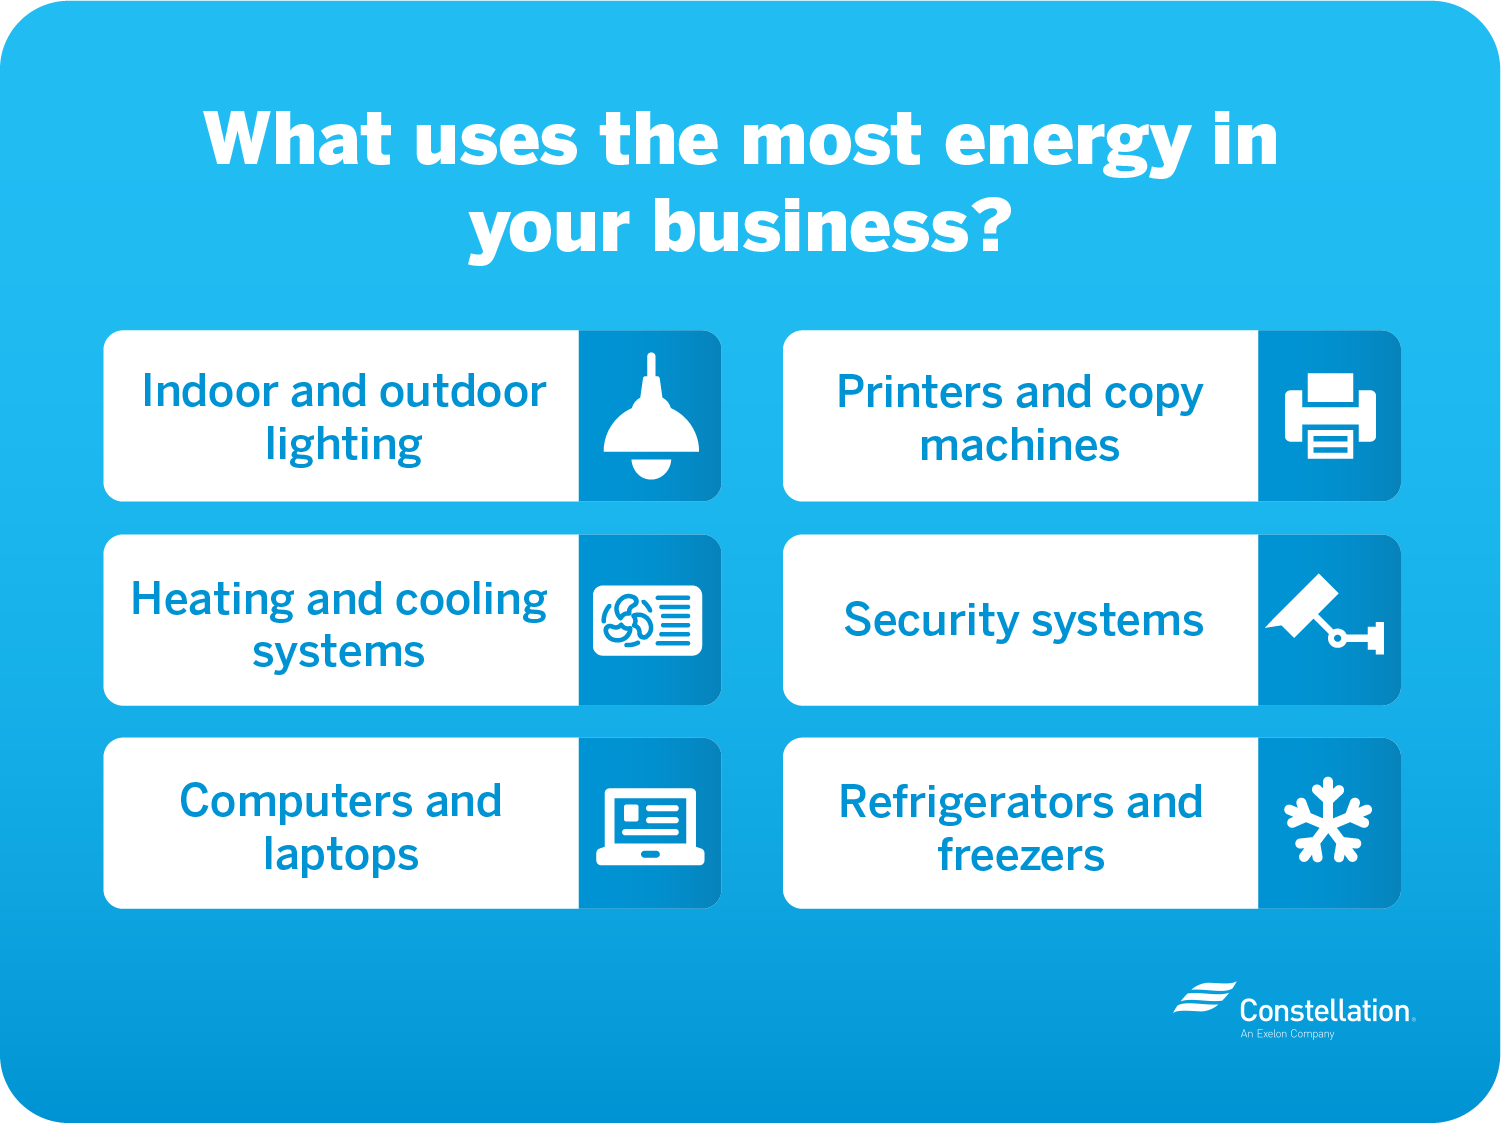 What uses the most energy in your business